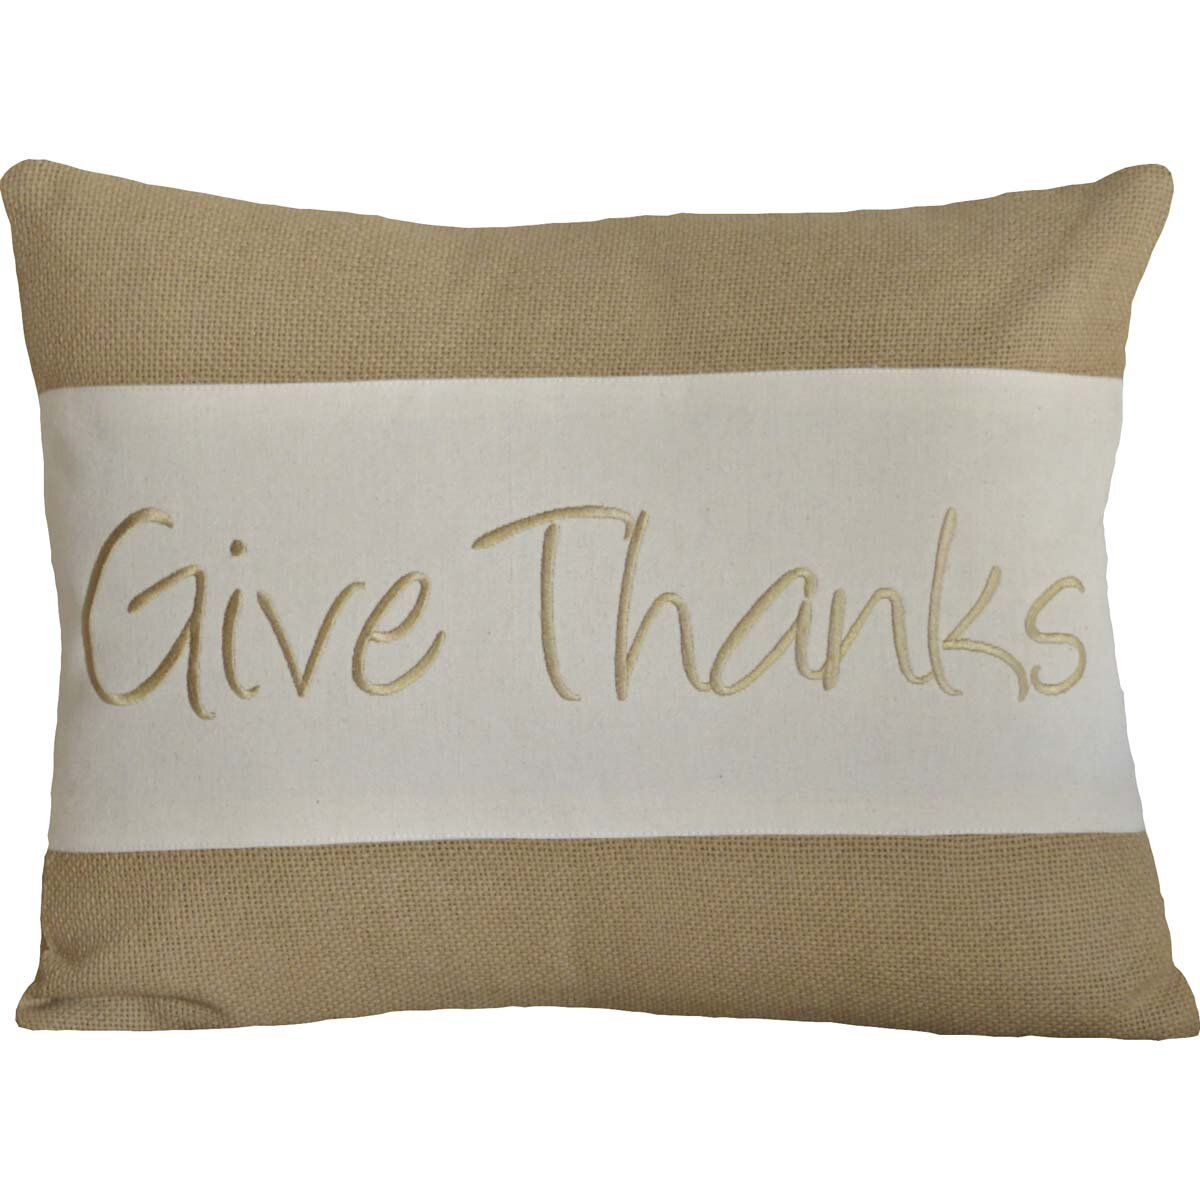 "/""GIVE THANKS/"" THANKSGIVING PATCH////ron On Embroidered Patch//Holiday,Autumn"